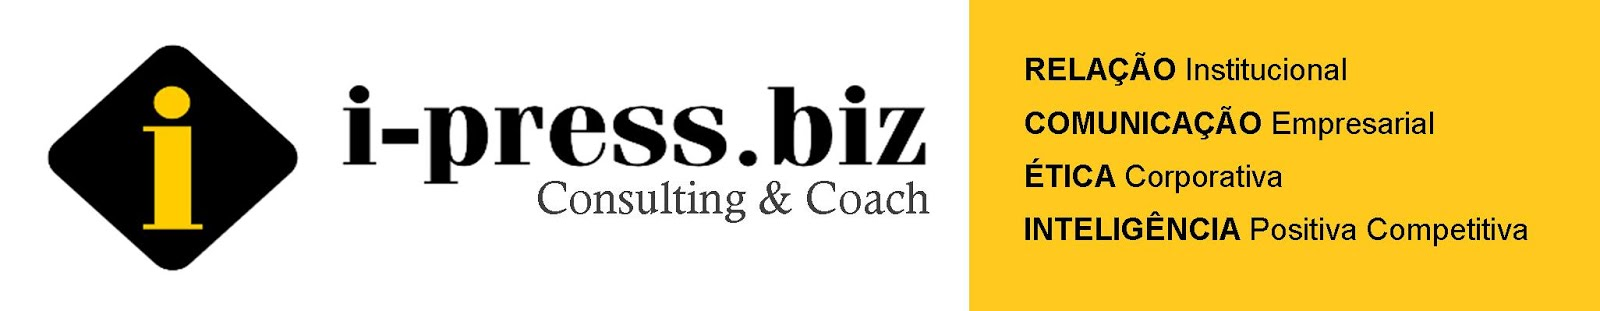 i-press.biz Consulting | Kátya Desessards